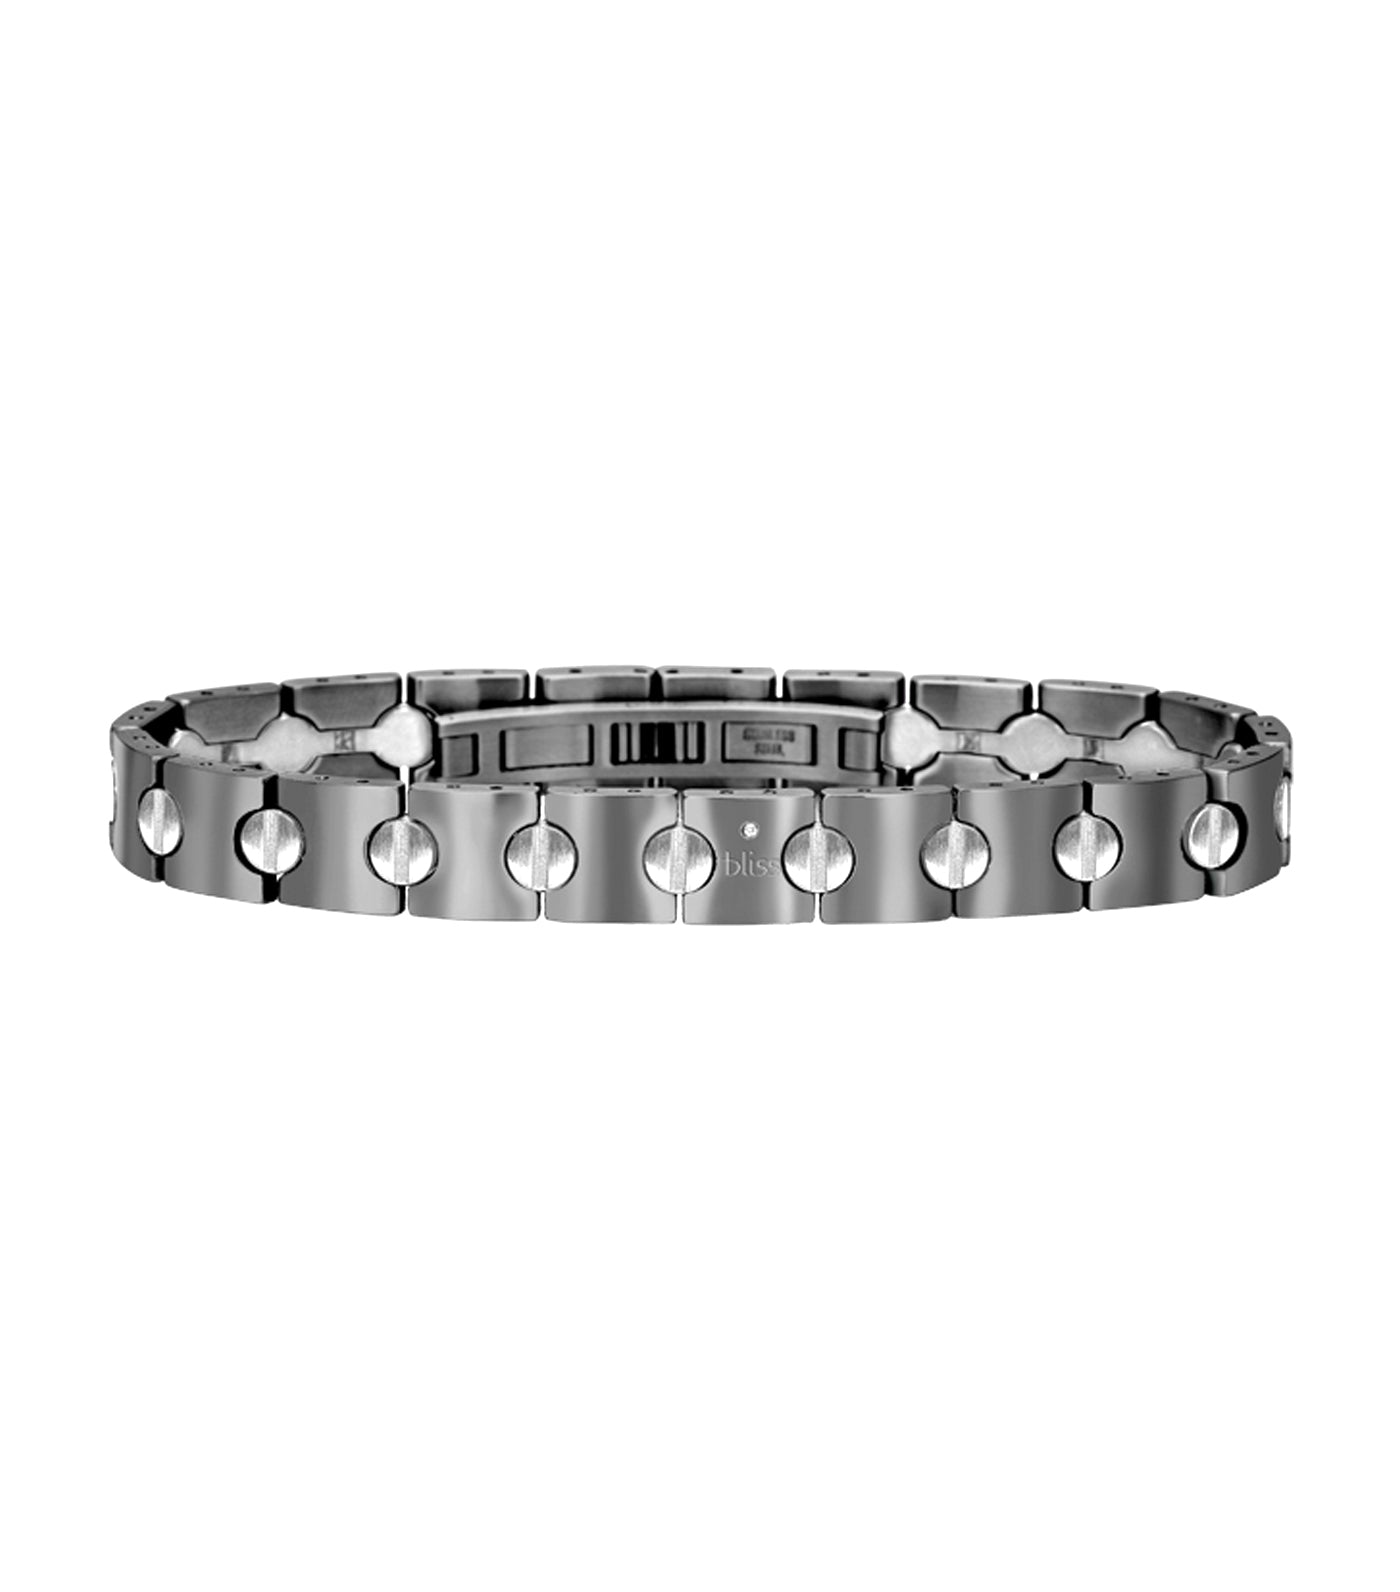 Rider Black Polished PVD Stainless Steel Bracelet